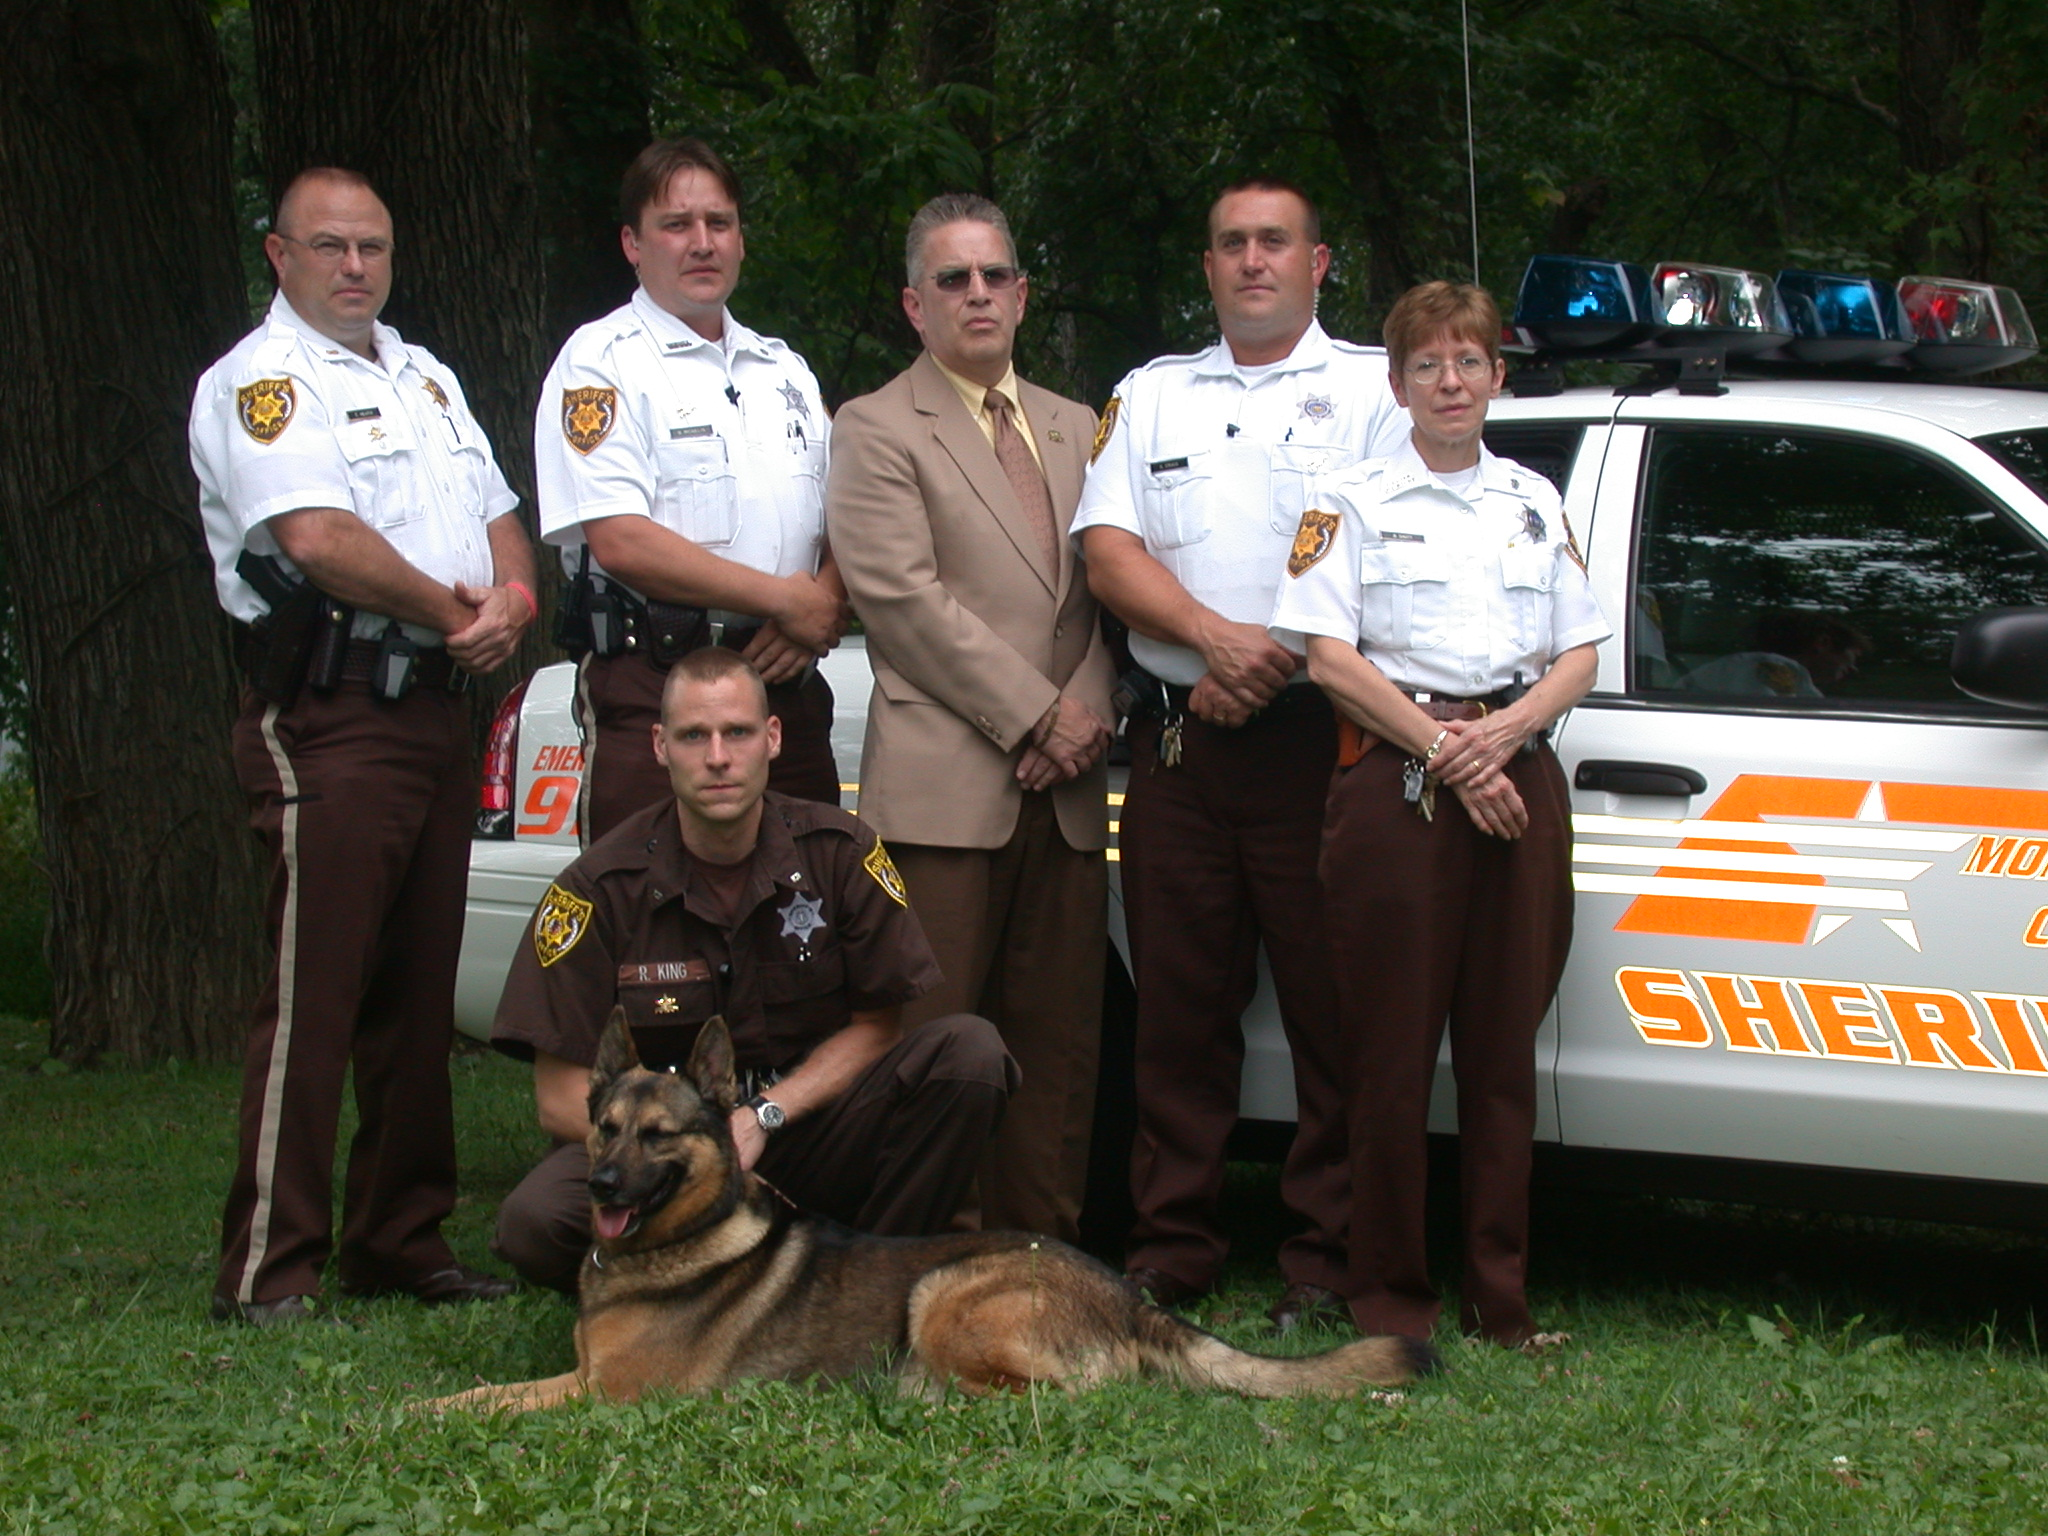 Sheriff Group